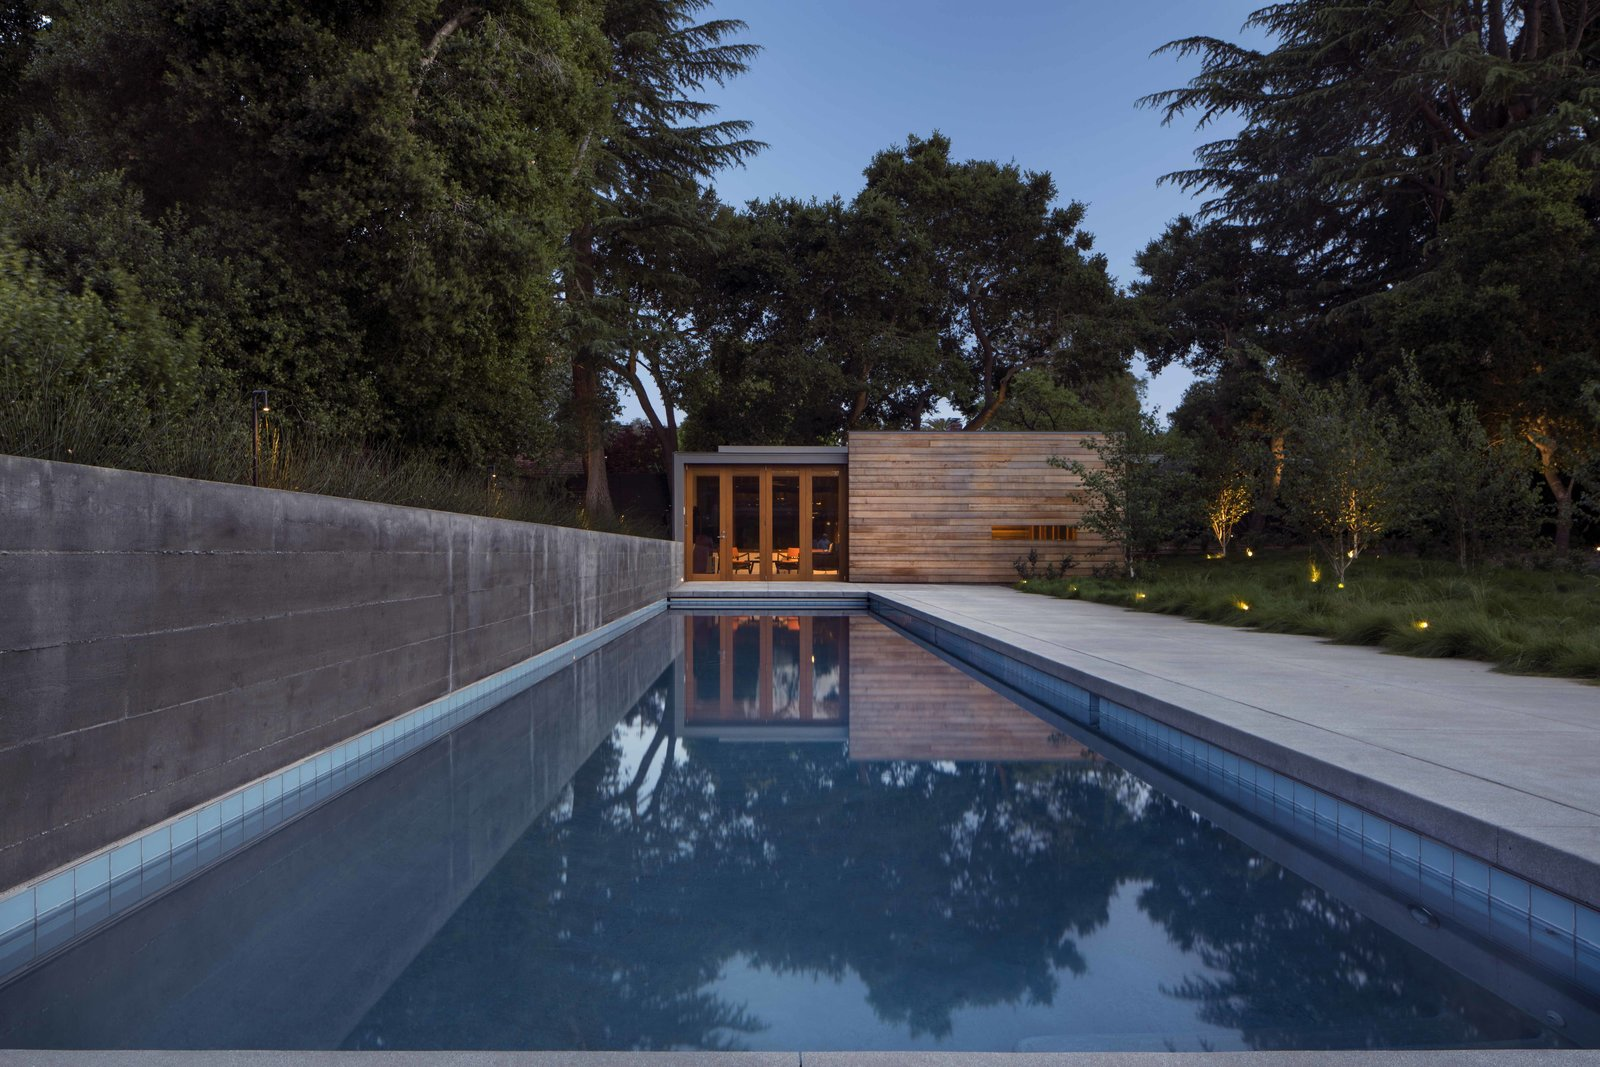 Photo 5 of 12 in Take a Plunge Into These Enticing Modern Pools from Los Altos Modern Residence